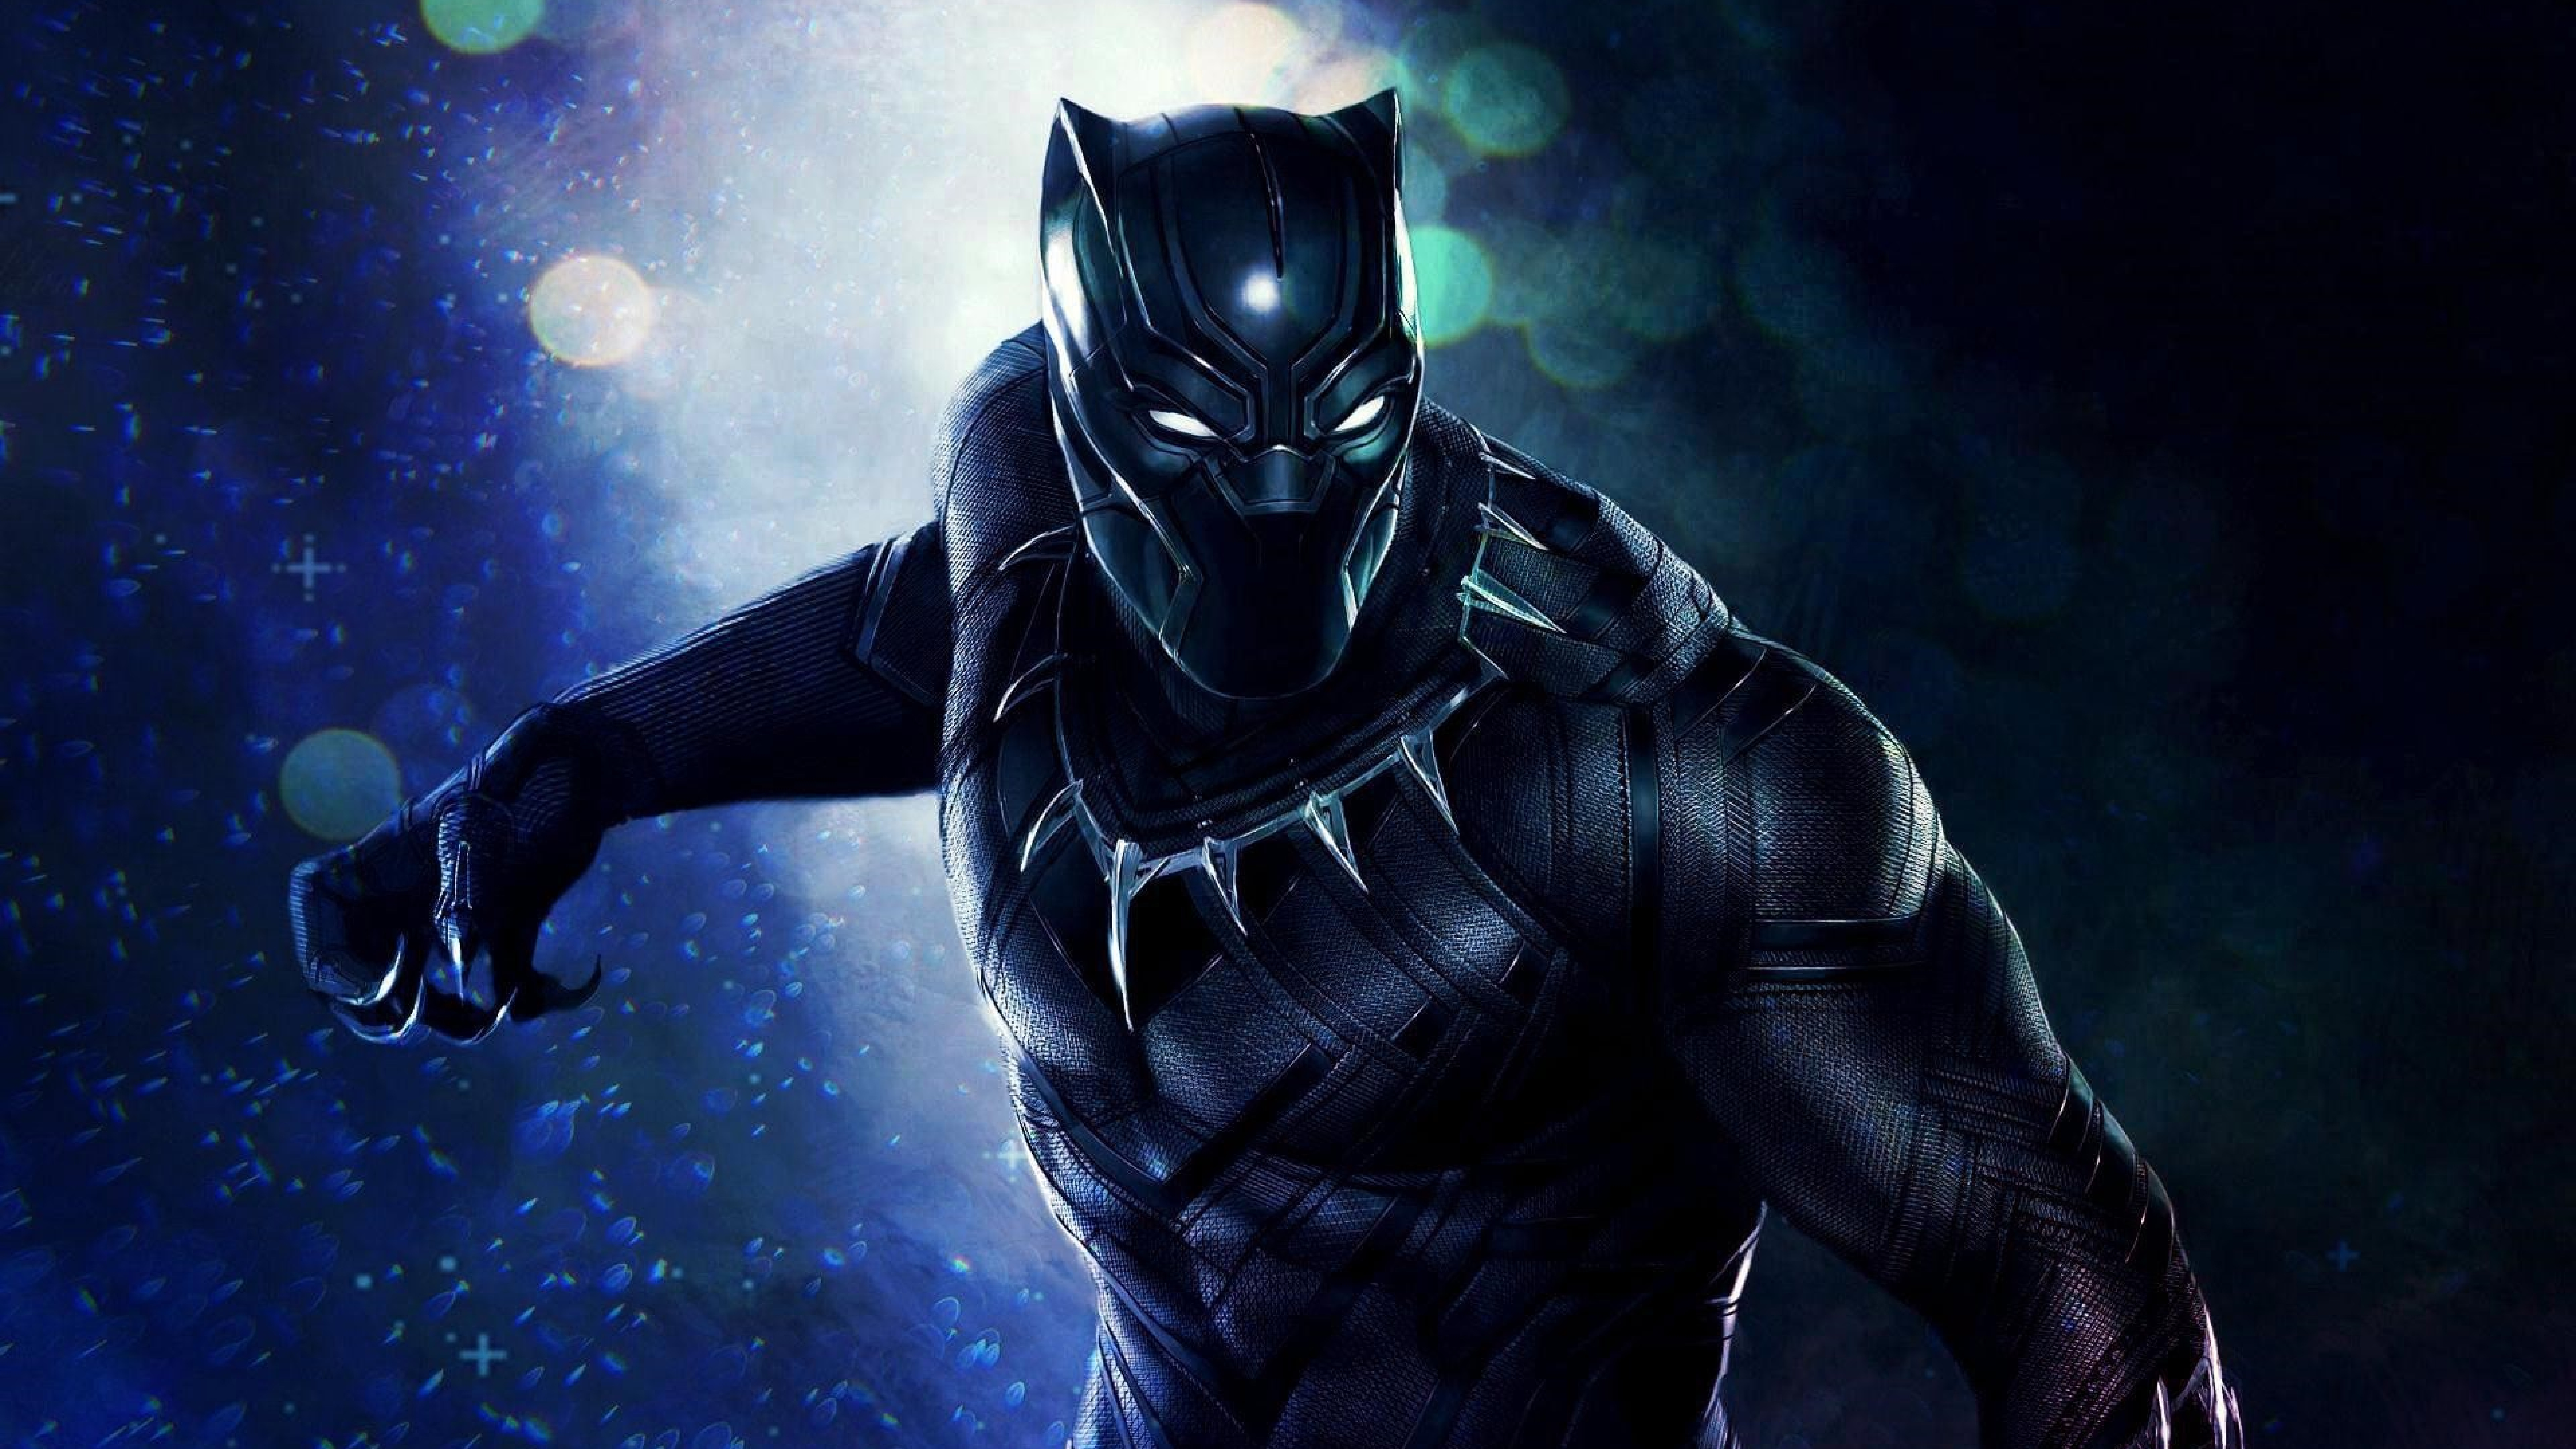 7680x4320 Black Panther 8k 8k Hd 4k Wallpapers Images Backgrounds Photos And Pictures